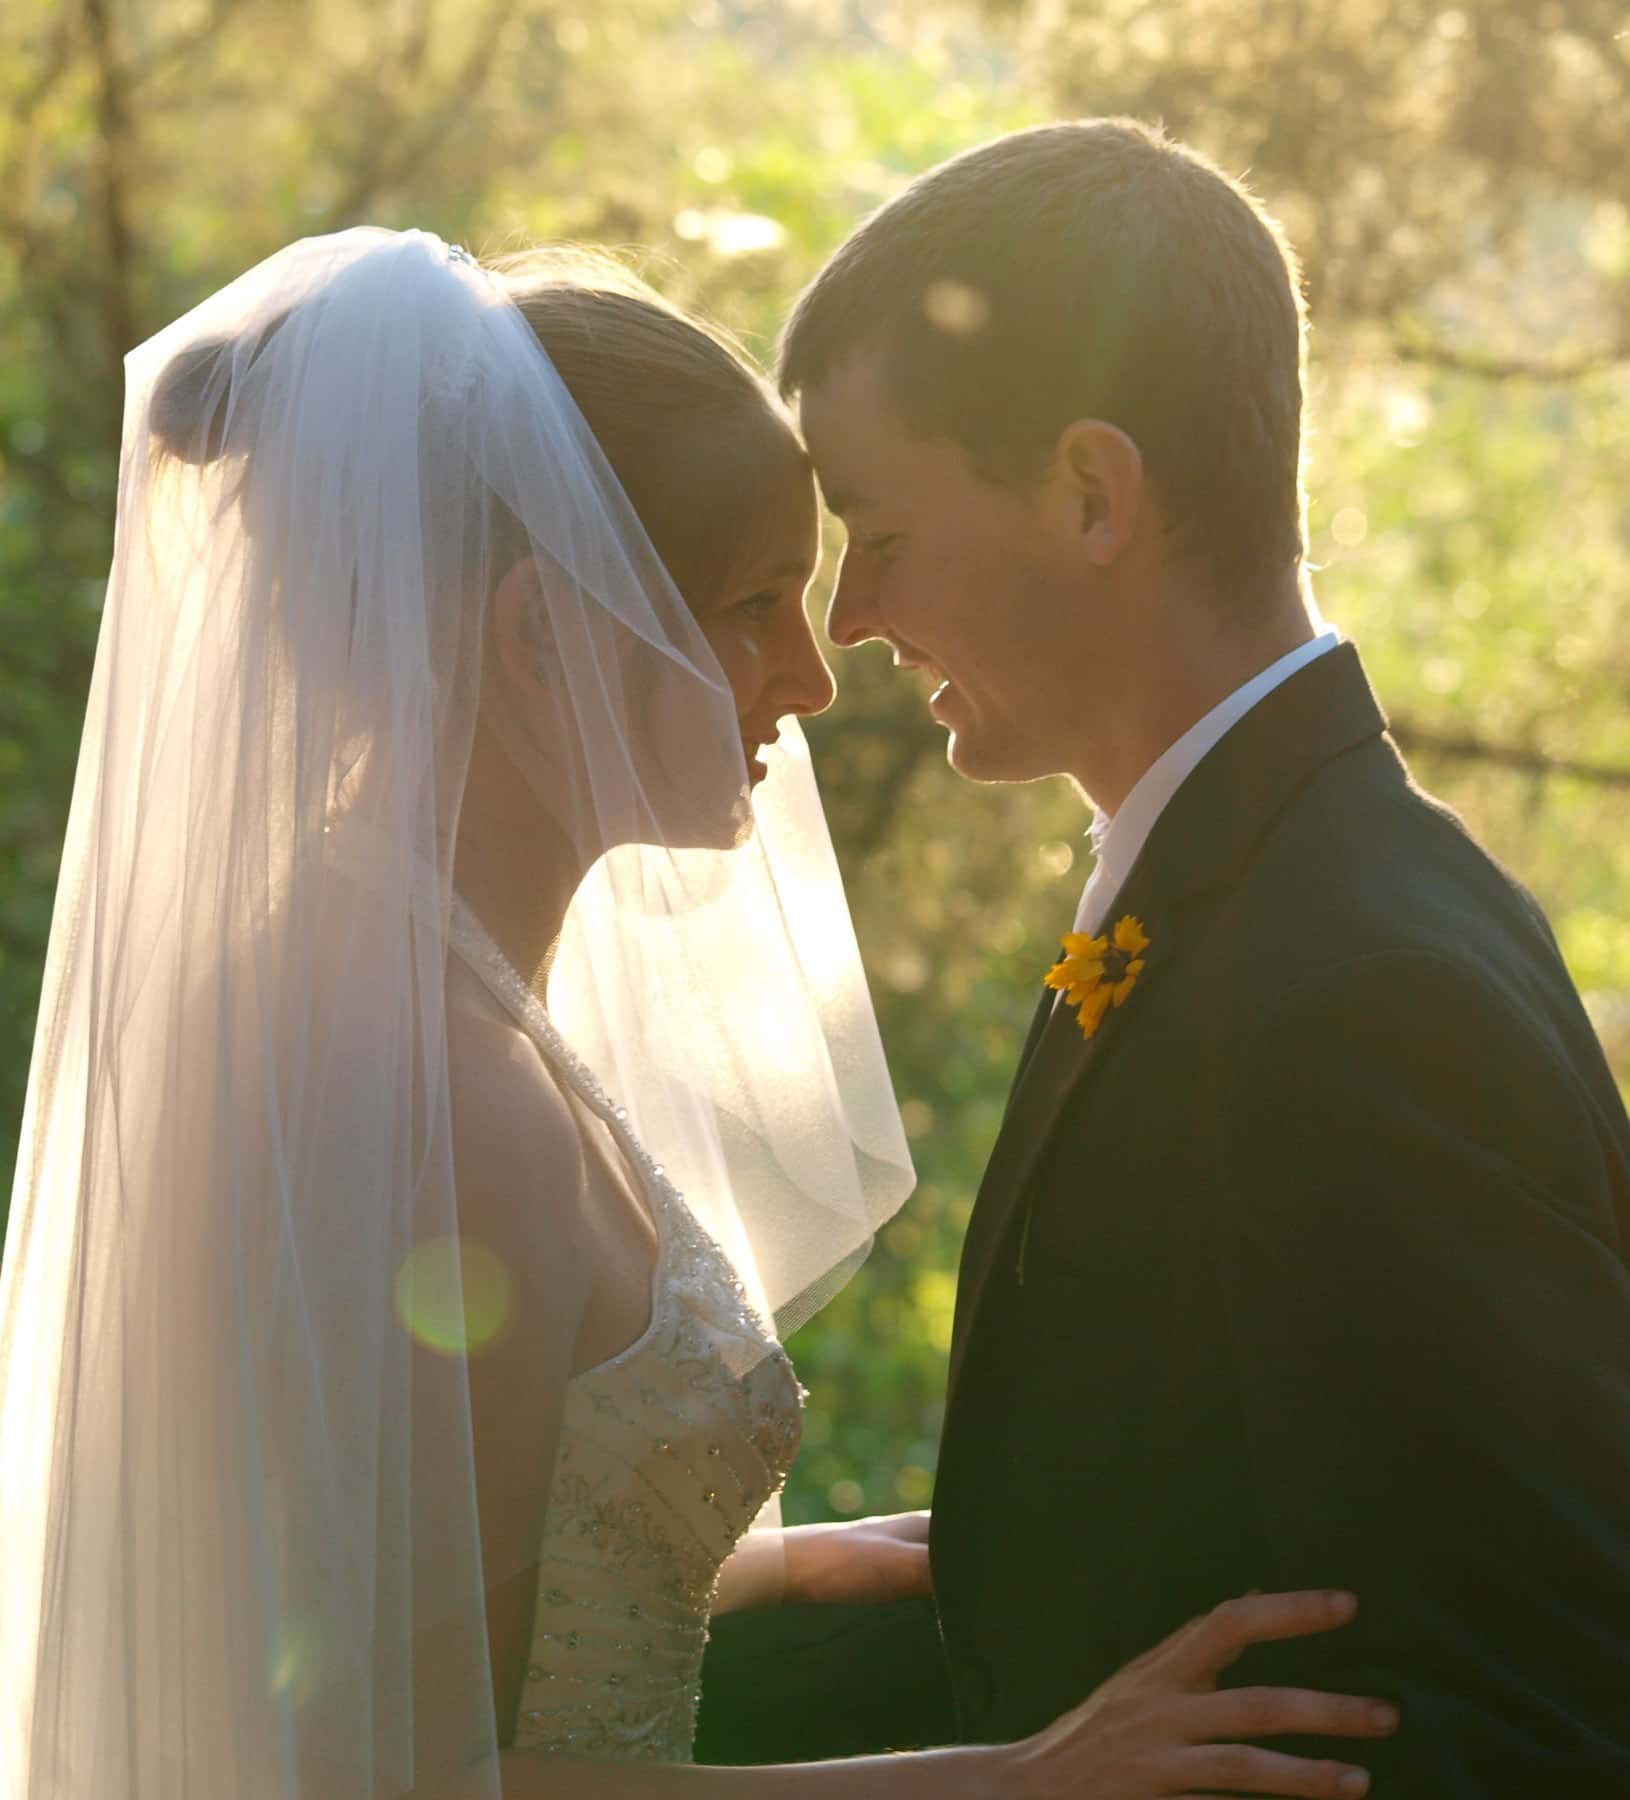 A profile shot of a bride and groom with warm summer light